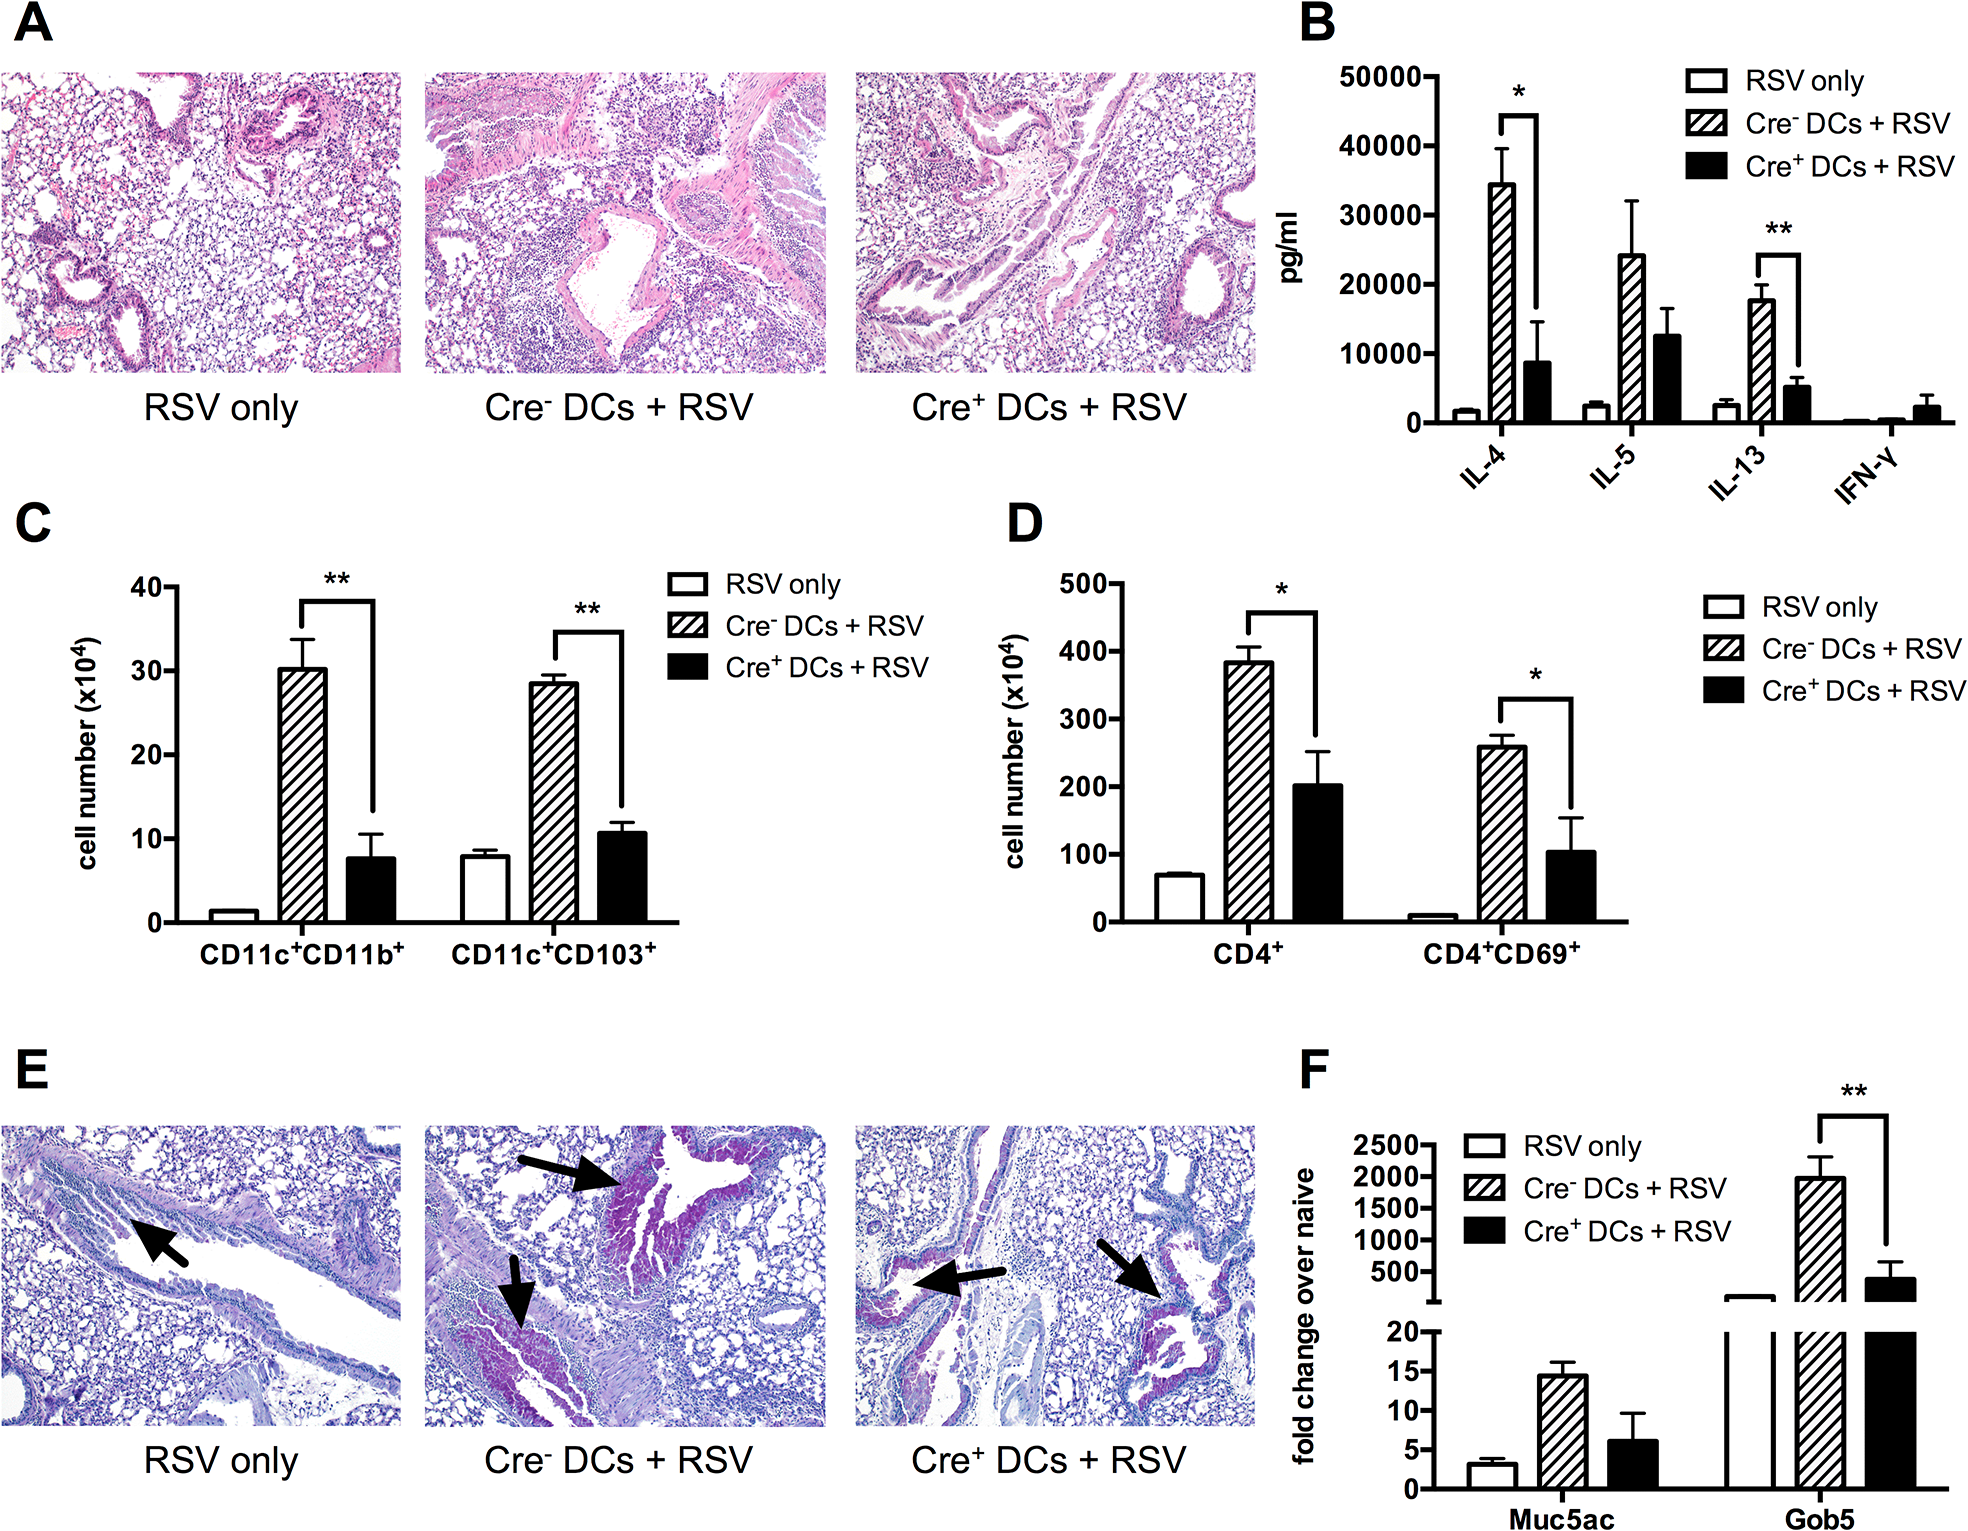 Sensitizing the lungs with <i>Kdm5b</i><sup>f/f</sup>-CD11c-Cre<sup>+</sup> DCs prior to infection results in decreased pathology following RSV challenge.